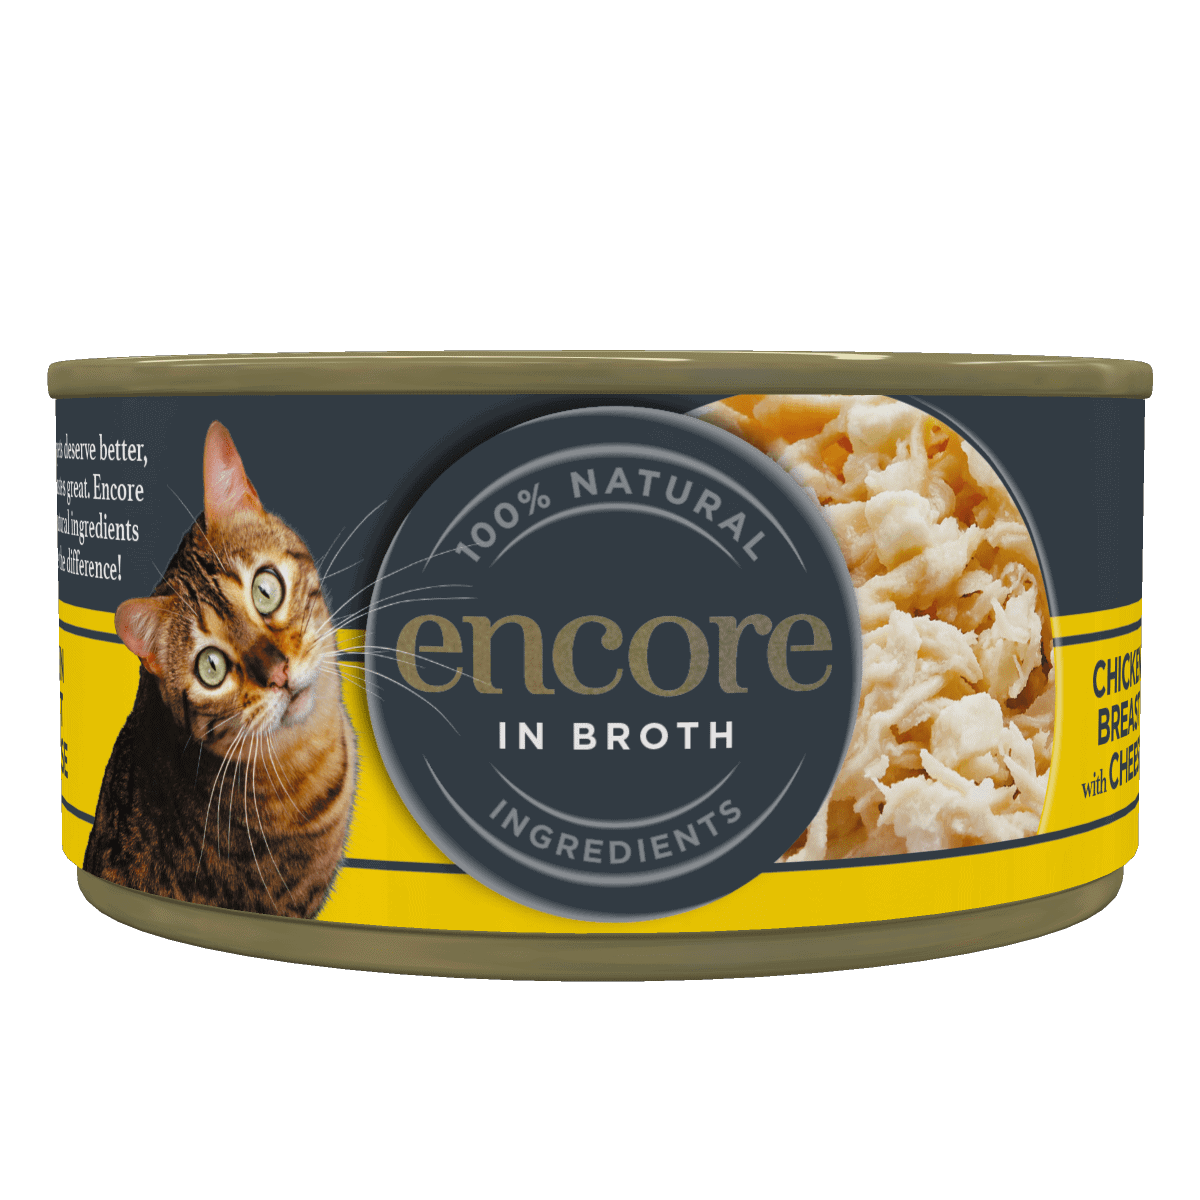 Close up of Encore cat food tin in broth